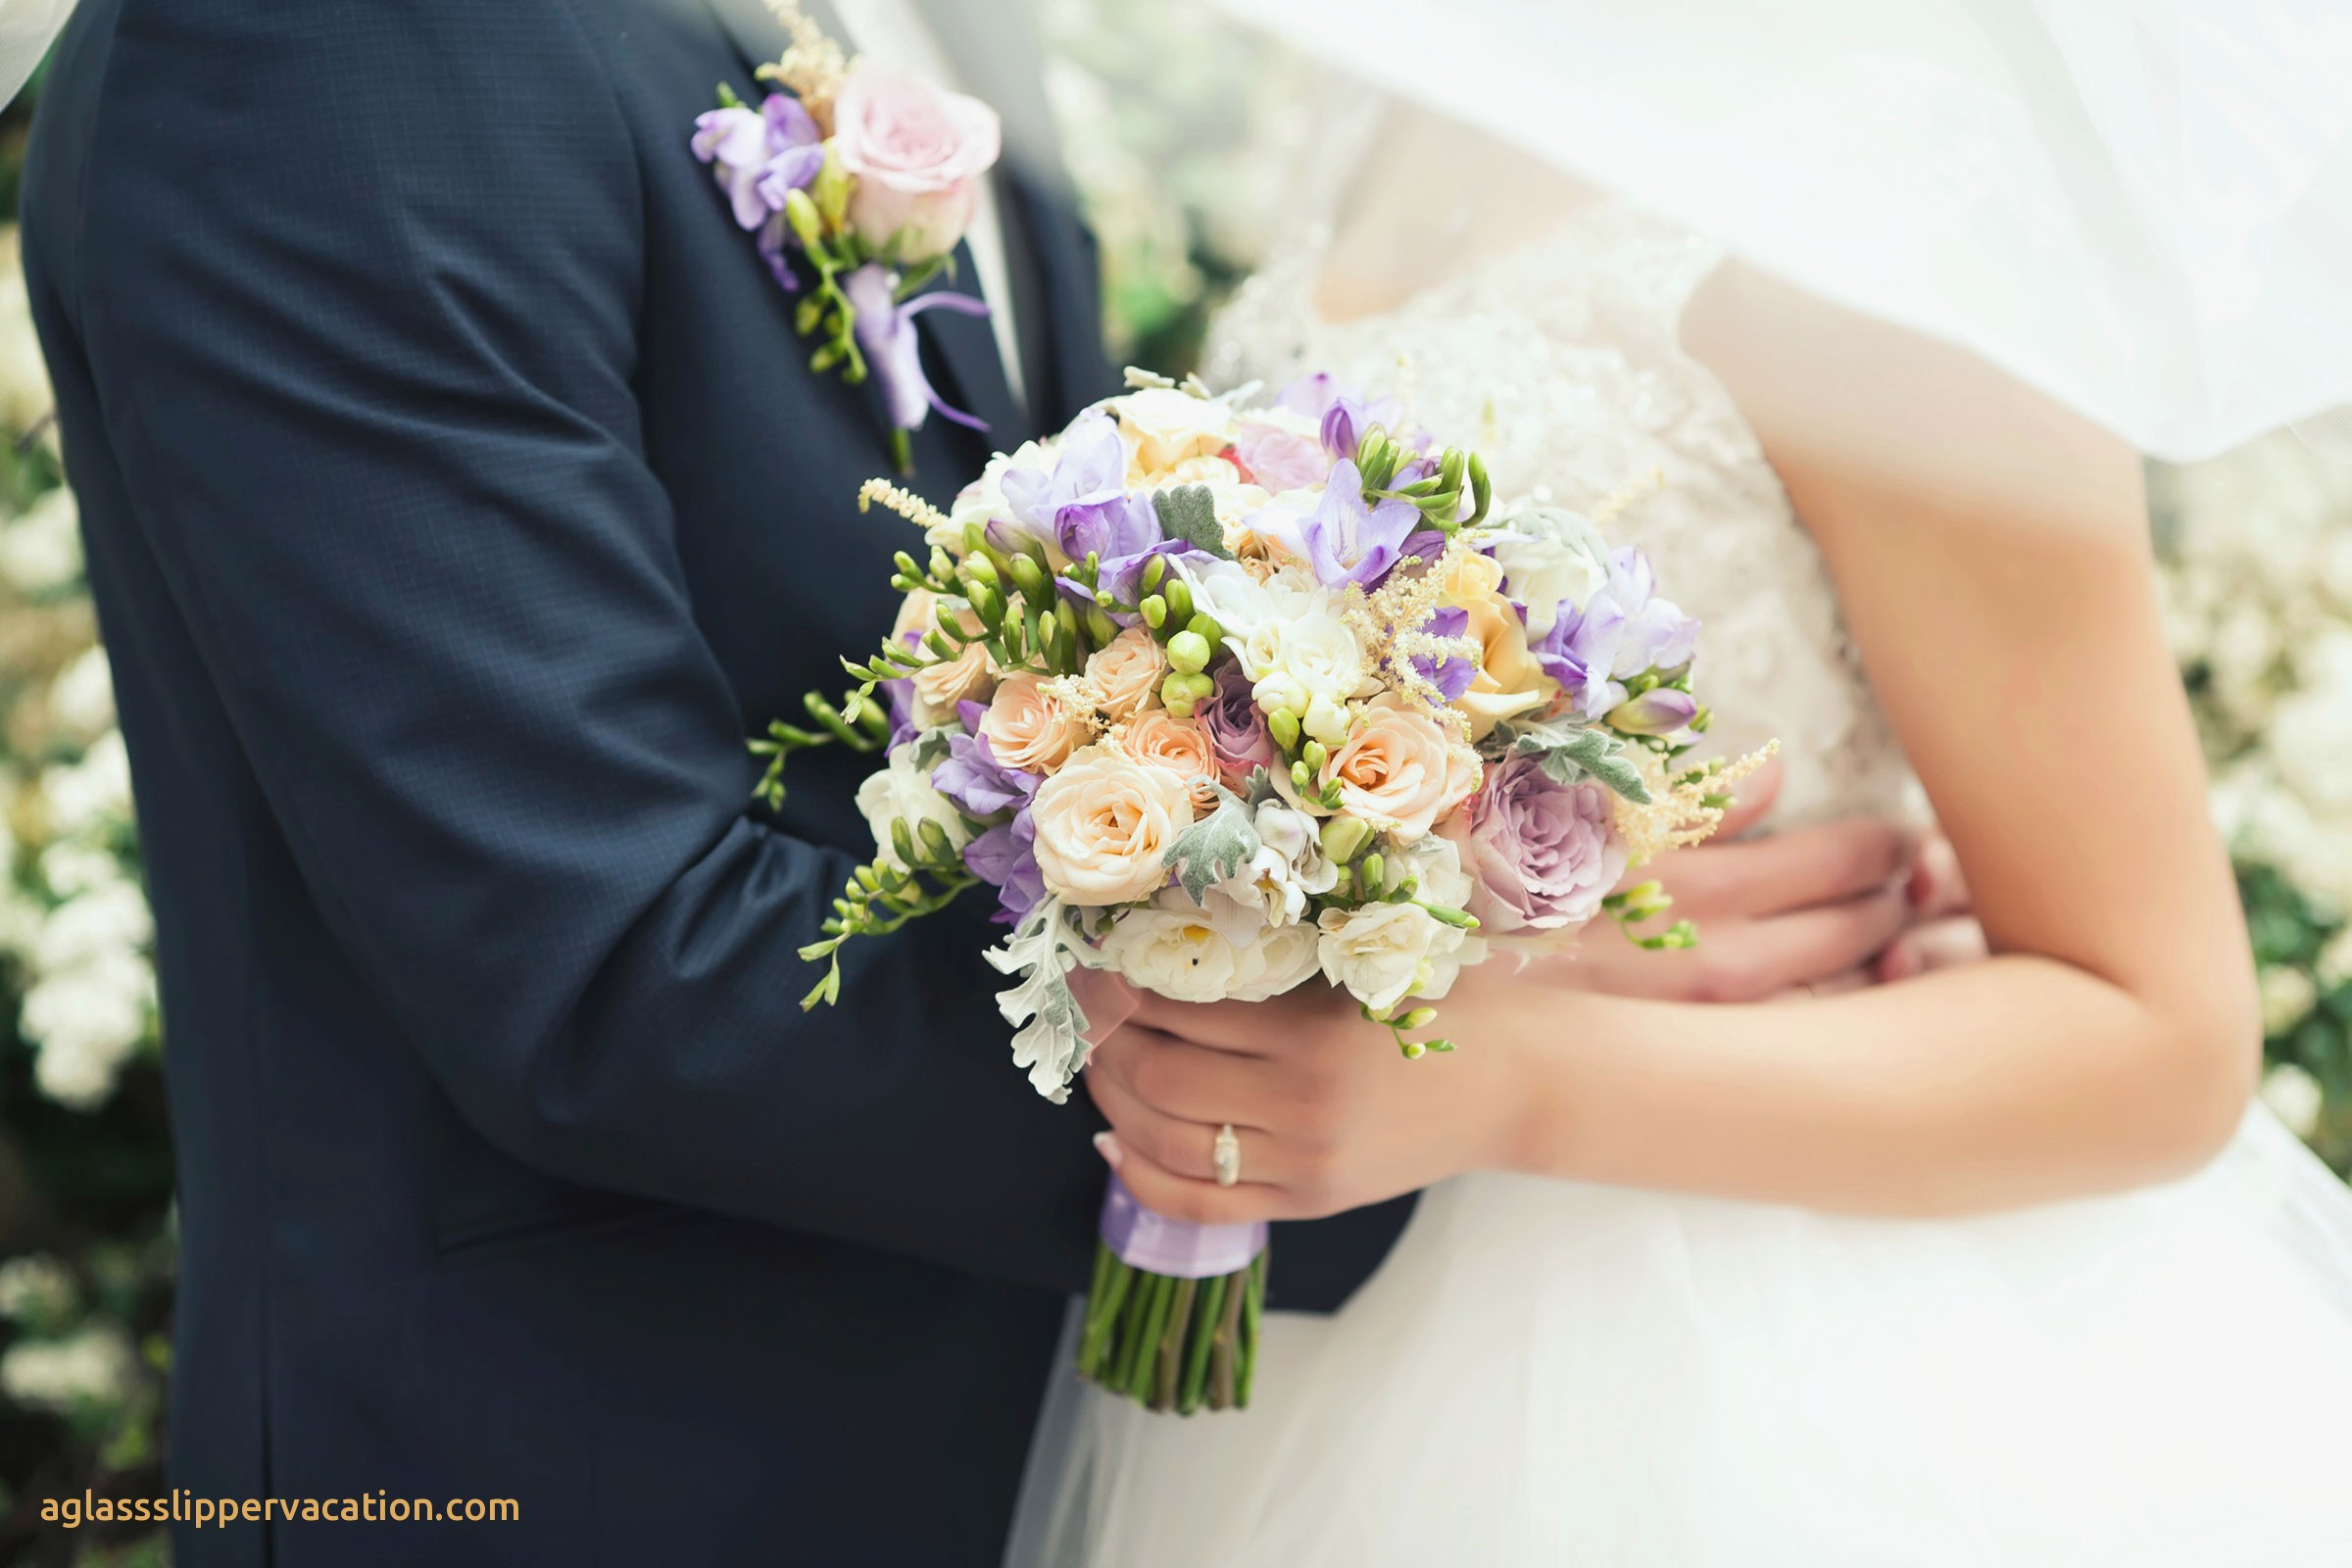 grocery store wedding flowers photo - 1